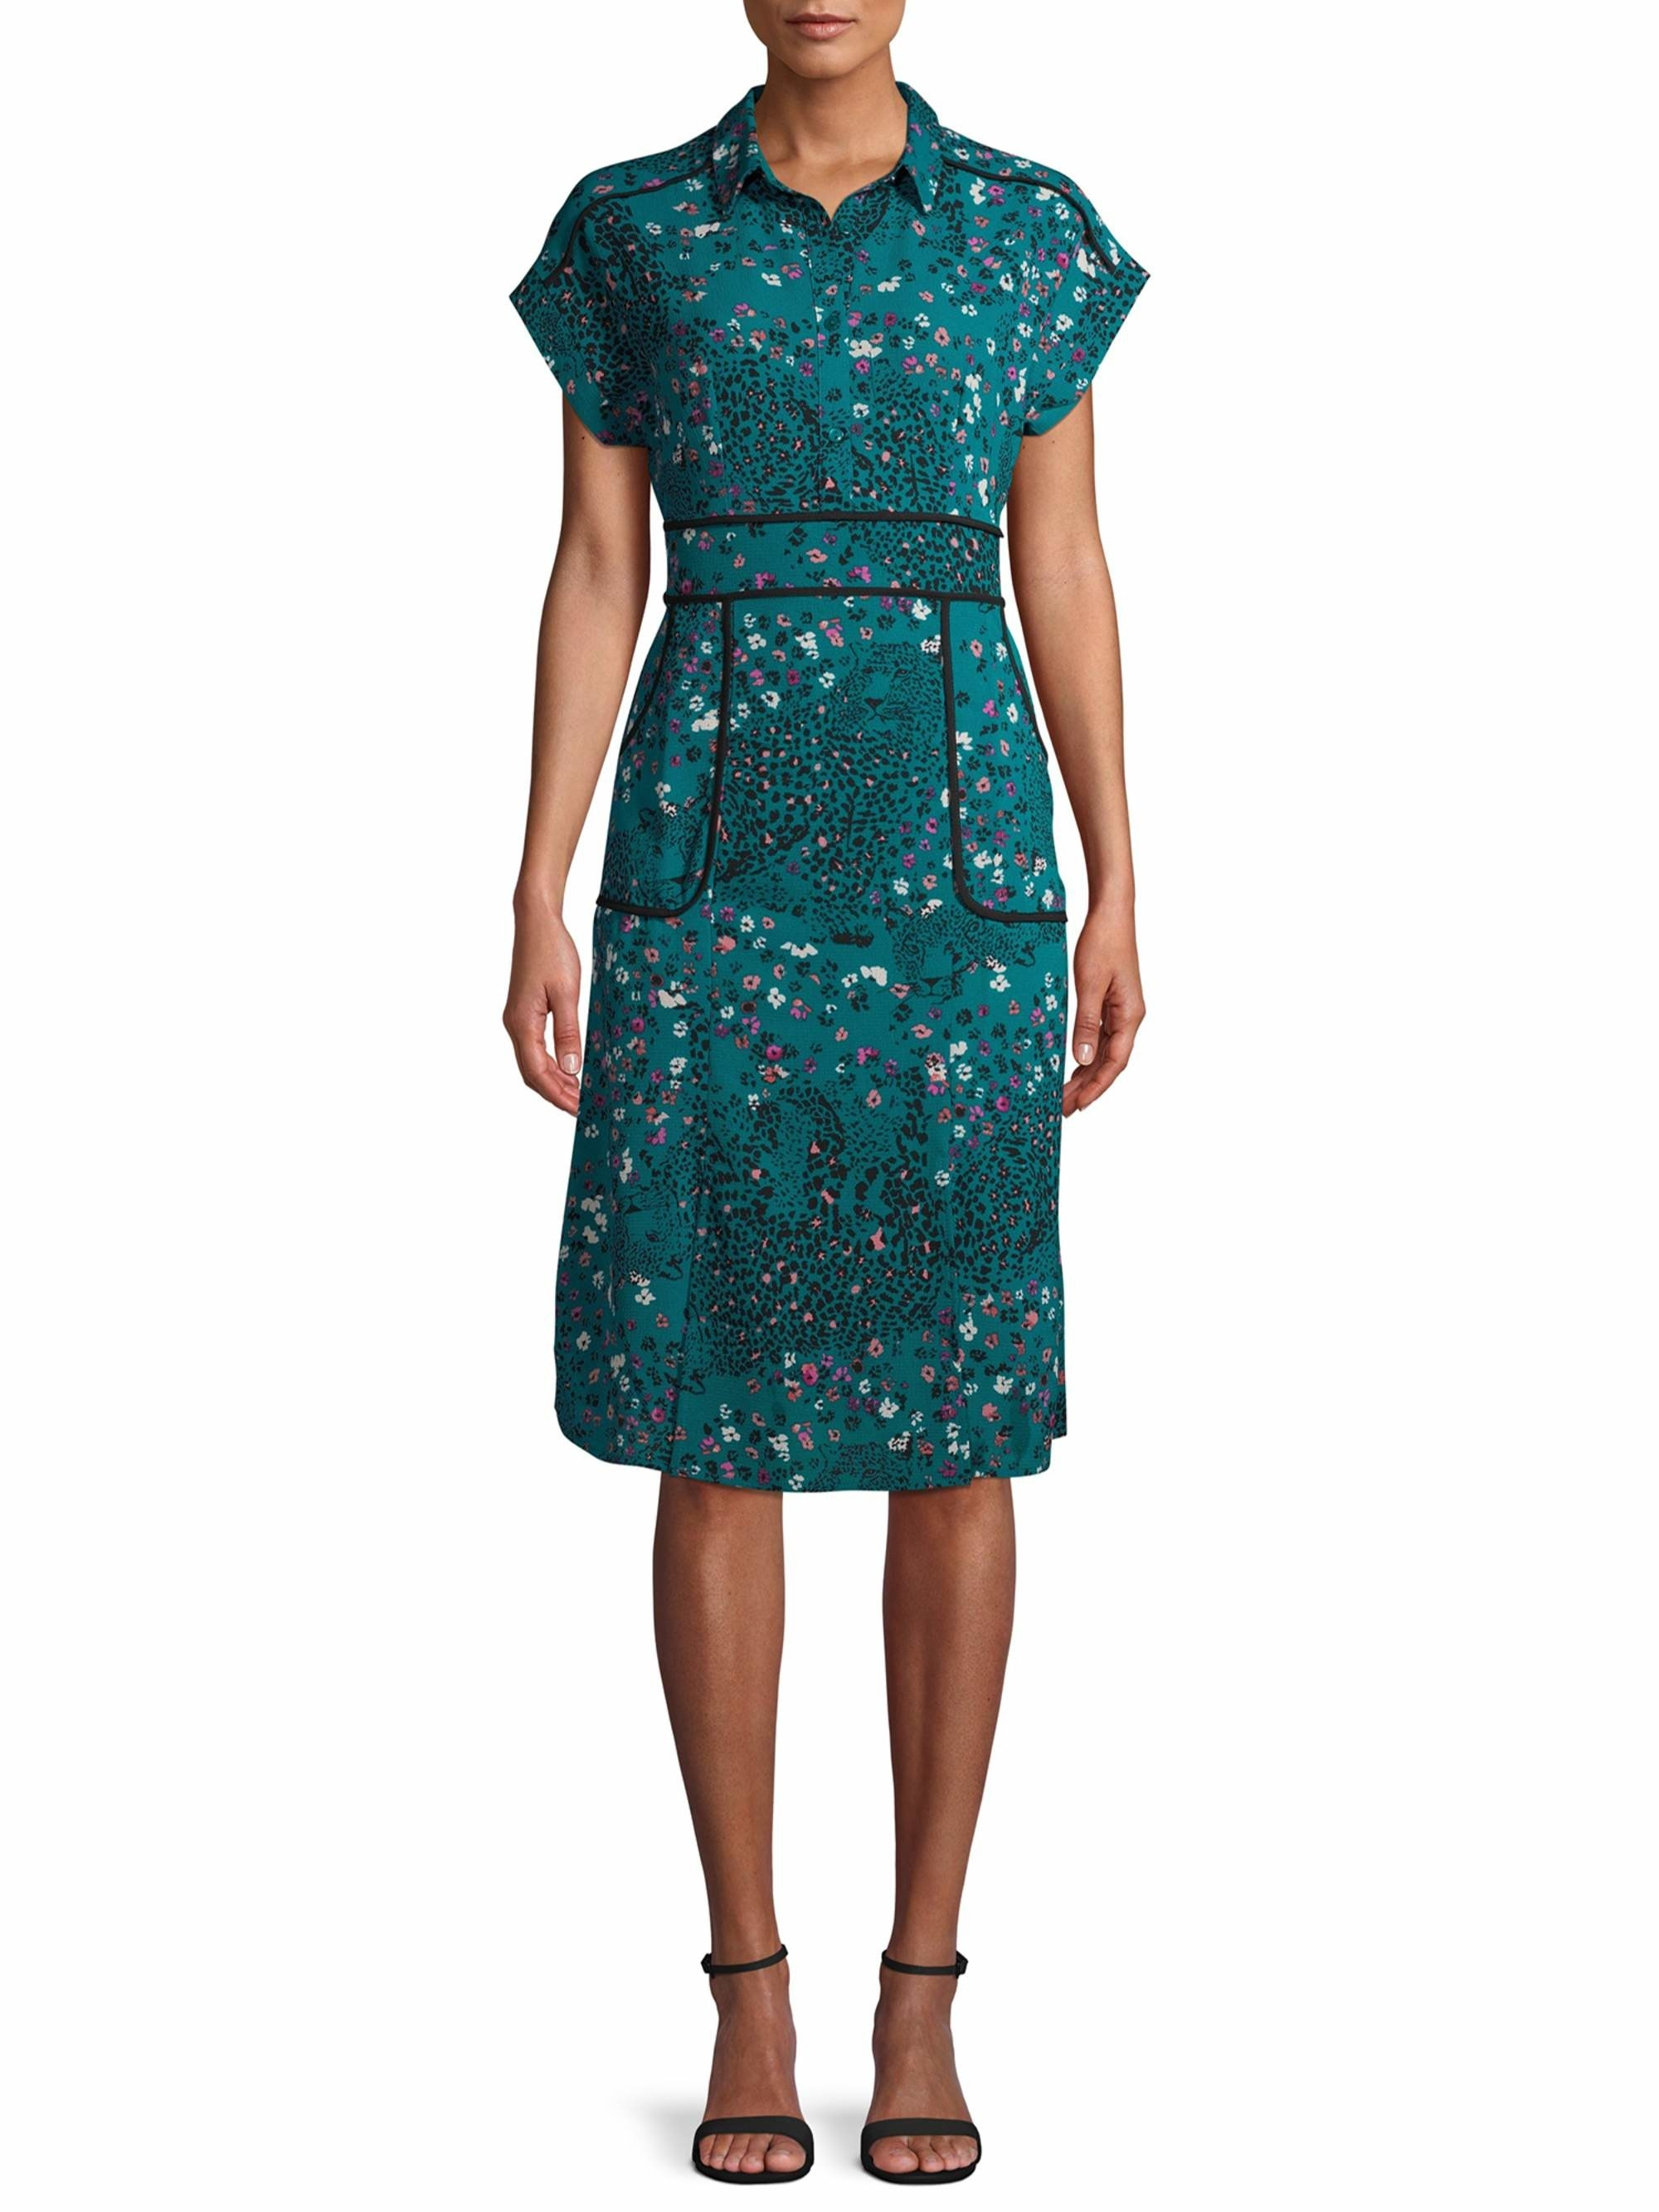 a model in a fitted teal green dress with a collar and floral print